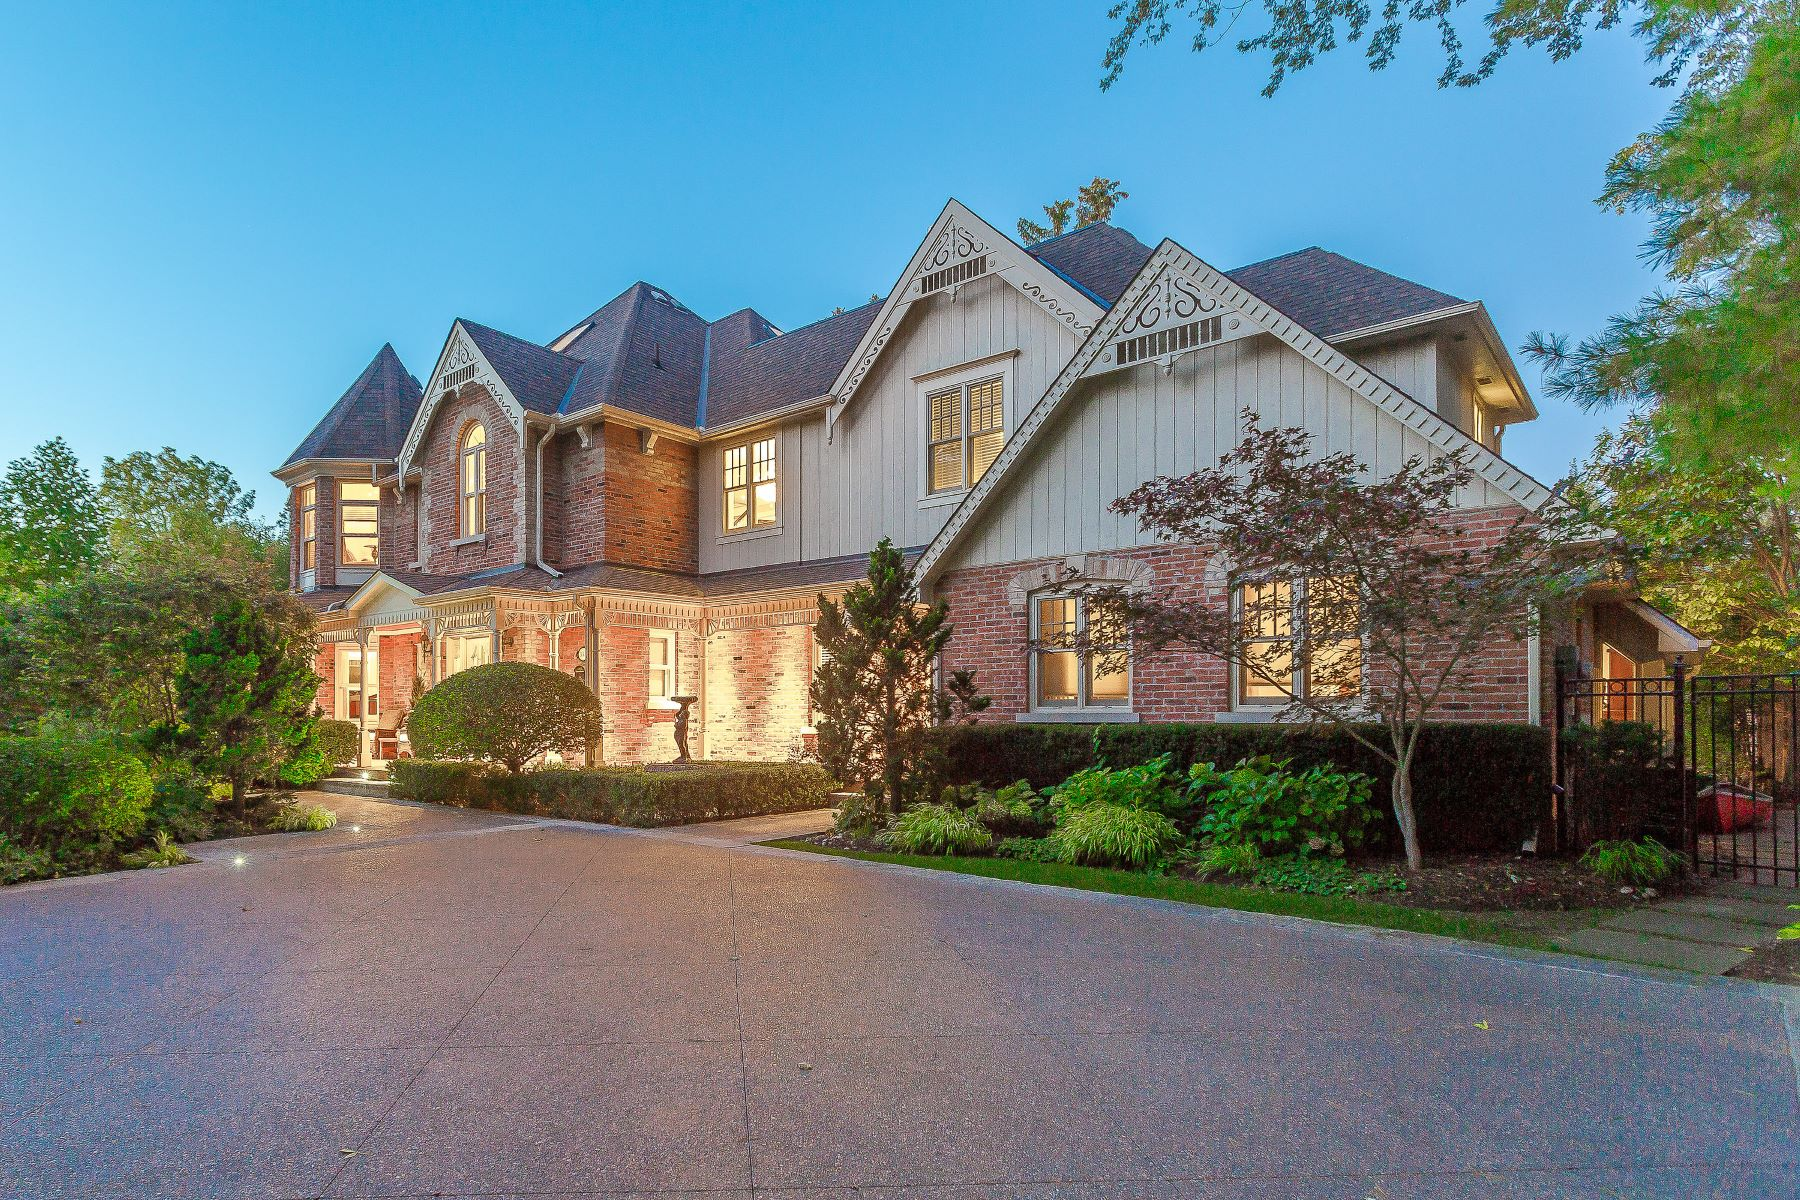 Single Family Homes for Sale at Modern Meets Traditional Charm 333 Chartwell Road Oakville, Ontario L6J 4A1 Canada